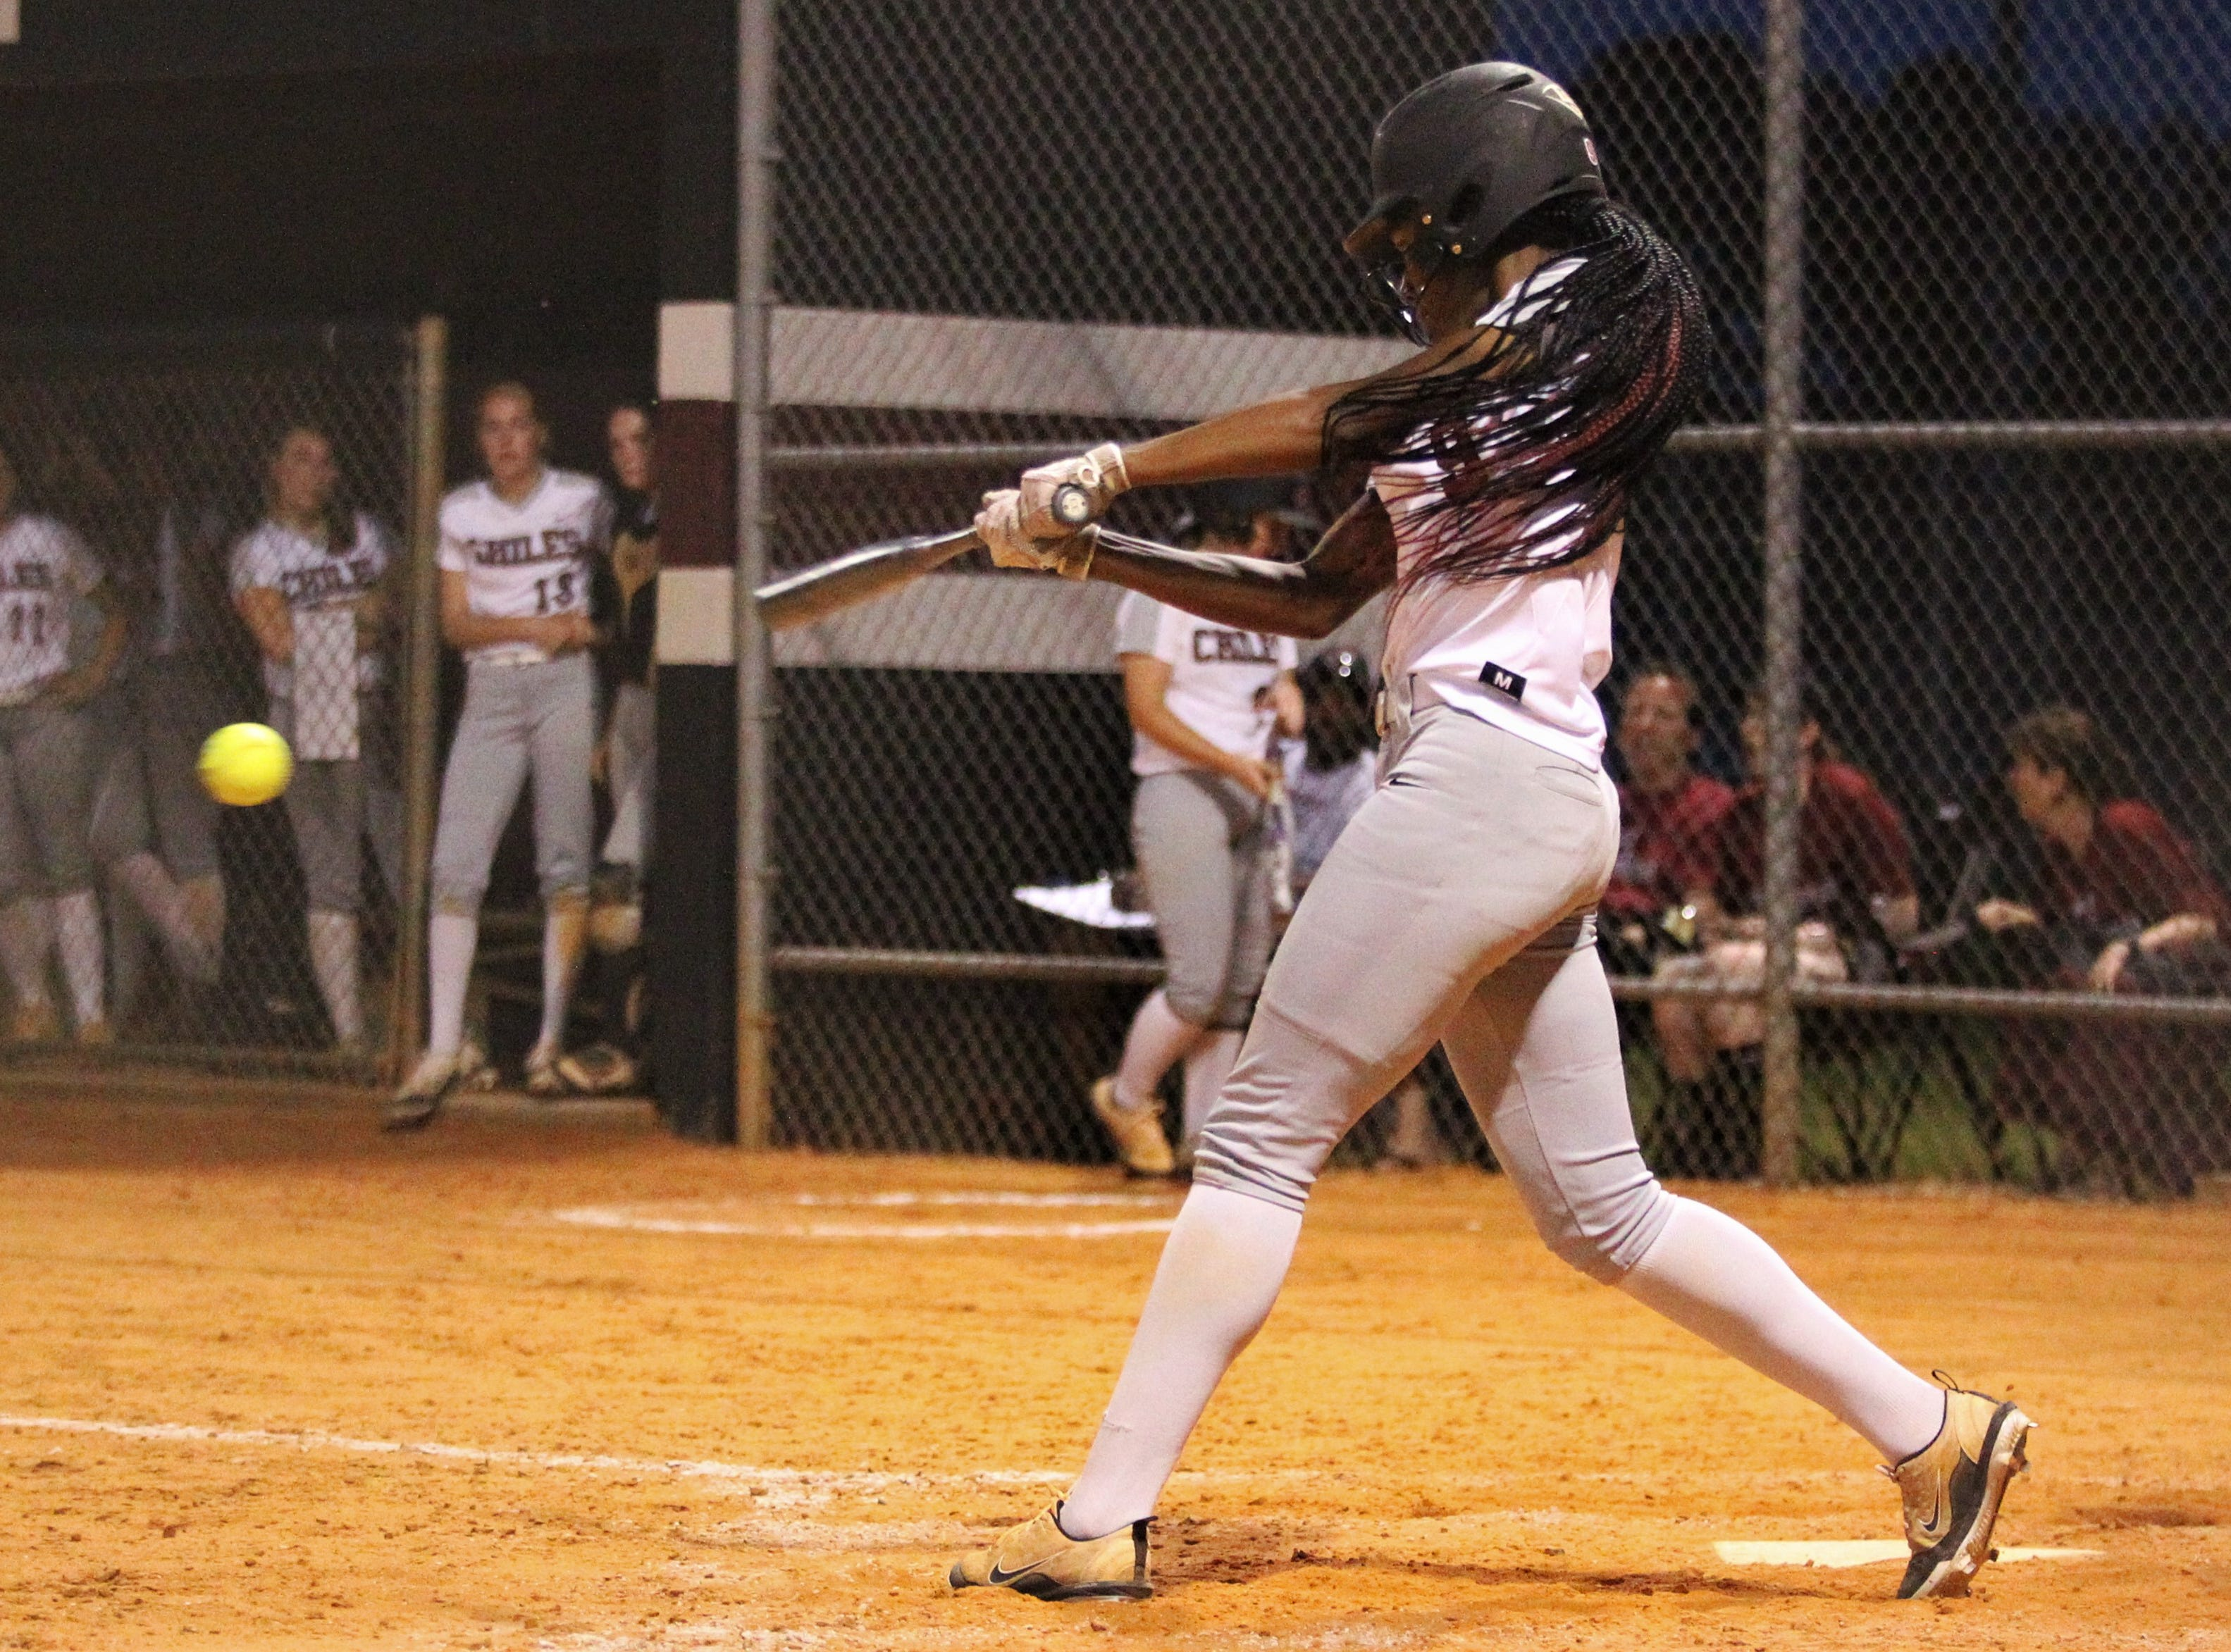 Chiles junior Lamari White bats as the Timberwolves beat Atlantic Coast 6-4 during a Region 1-8A quarterfinal softball game on Wednesday, May 8, 2019.